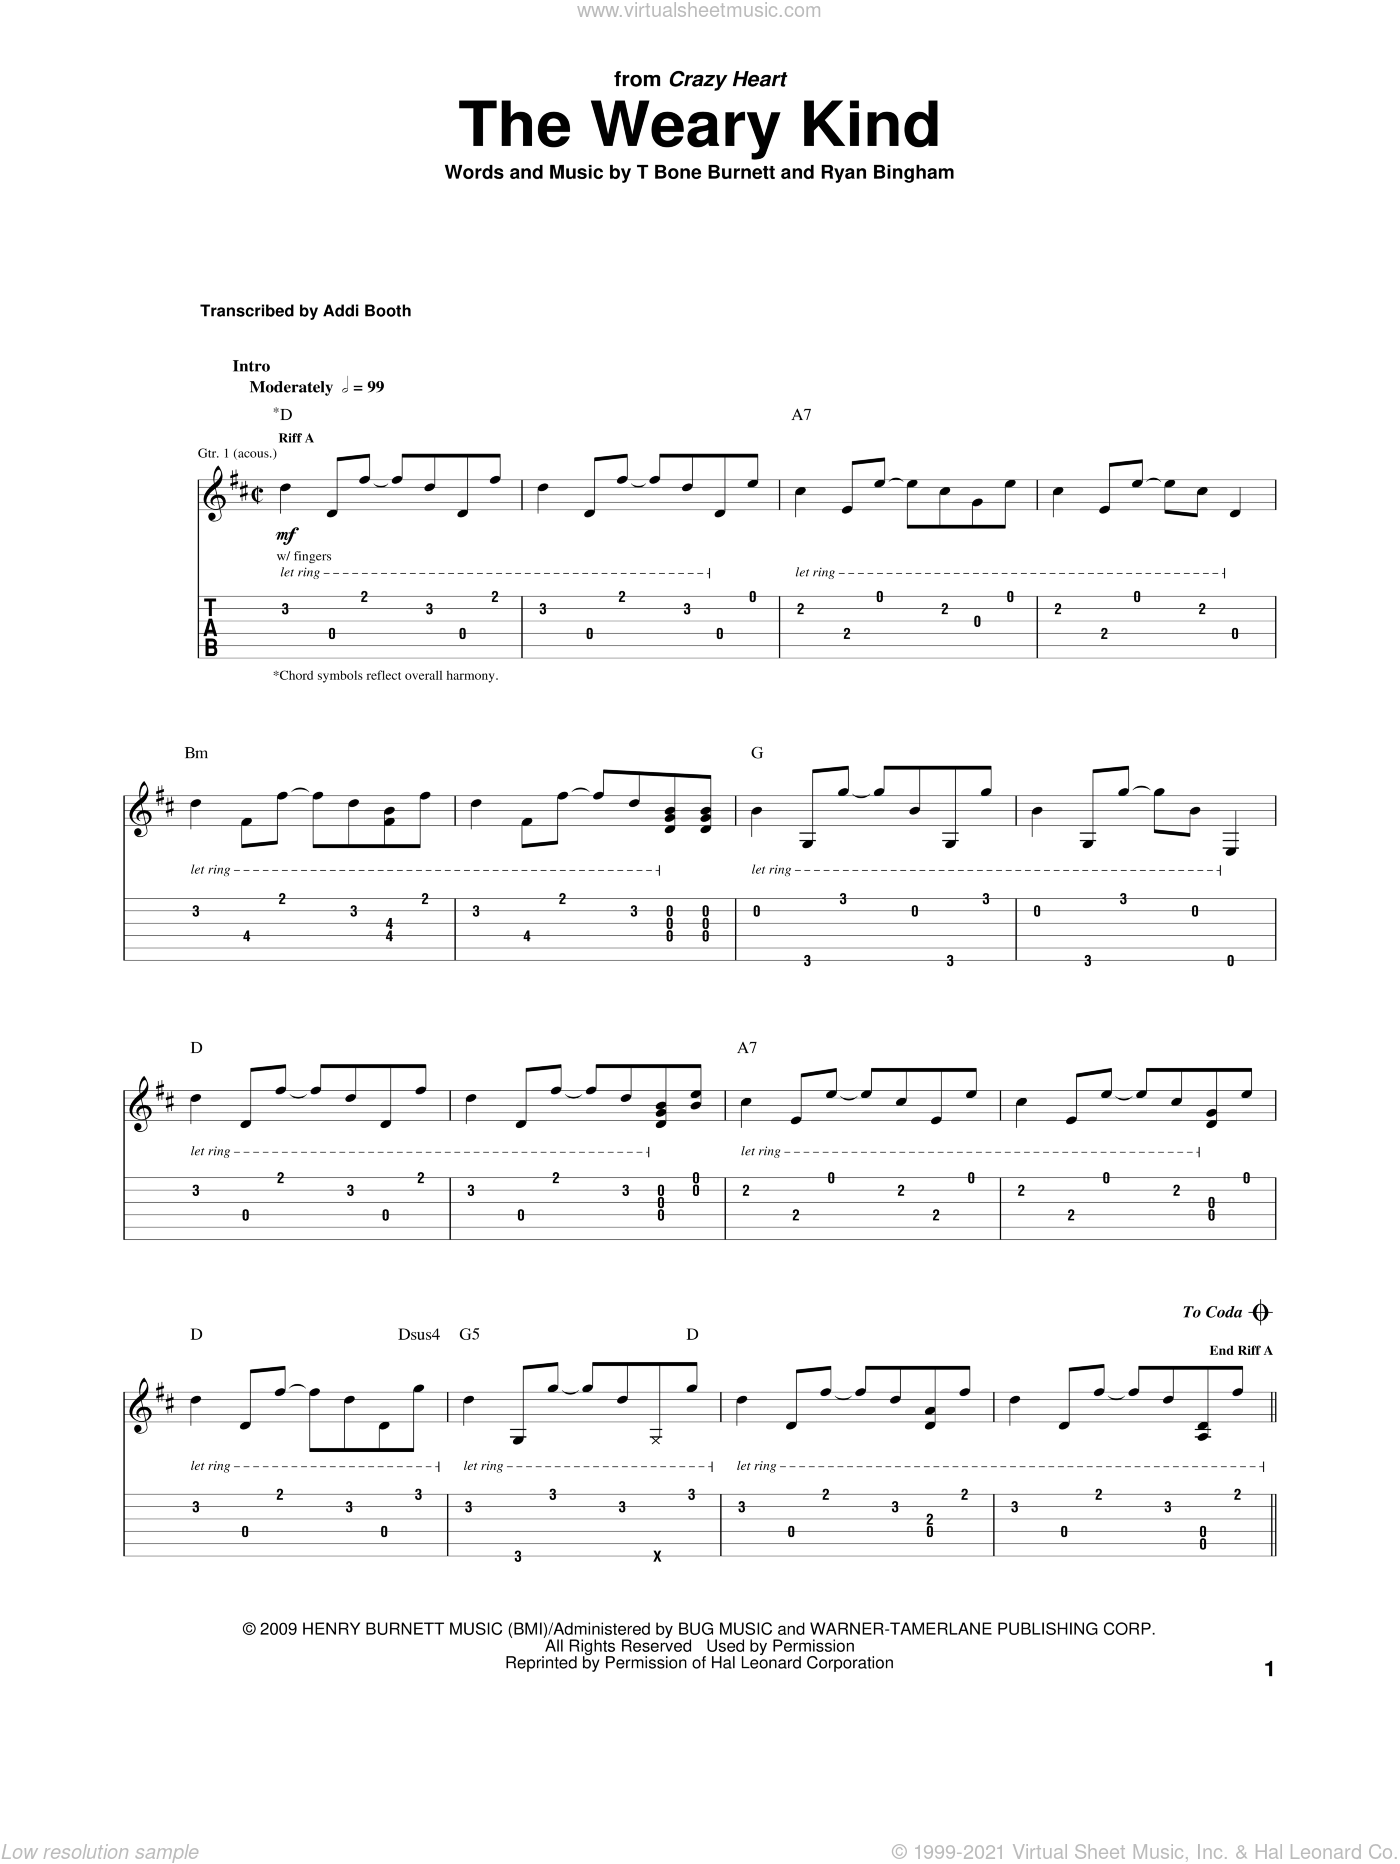 The Weary Kind (Theme From Crazy Heart) sheet music for guitar (tablature) by Ryan Bingham